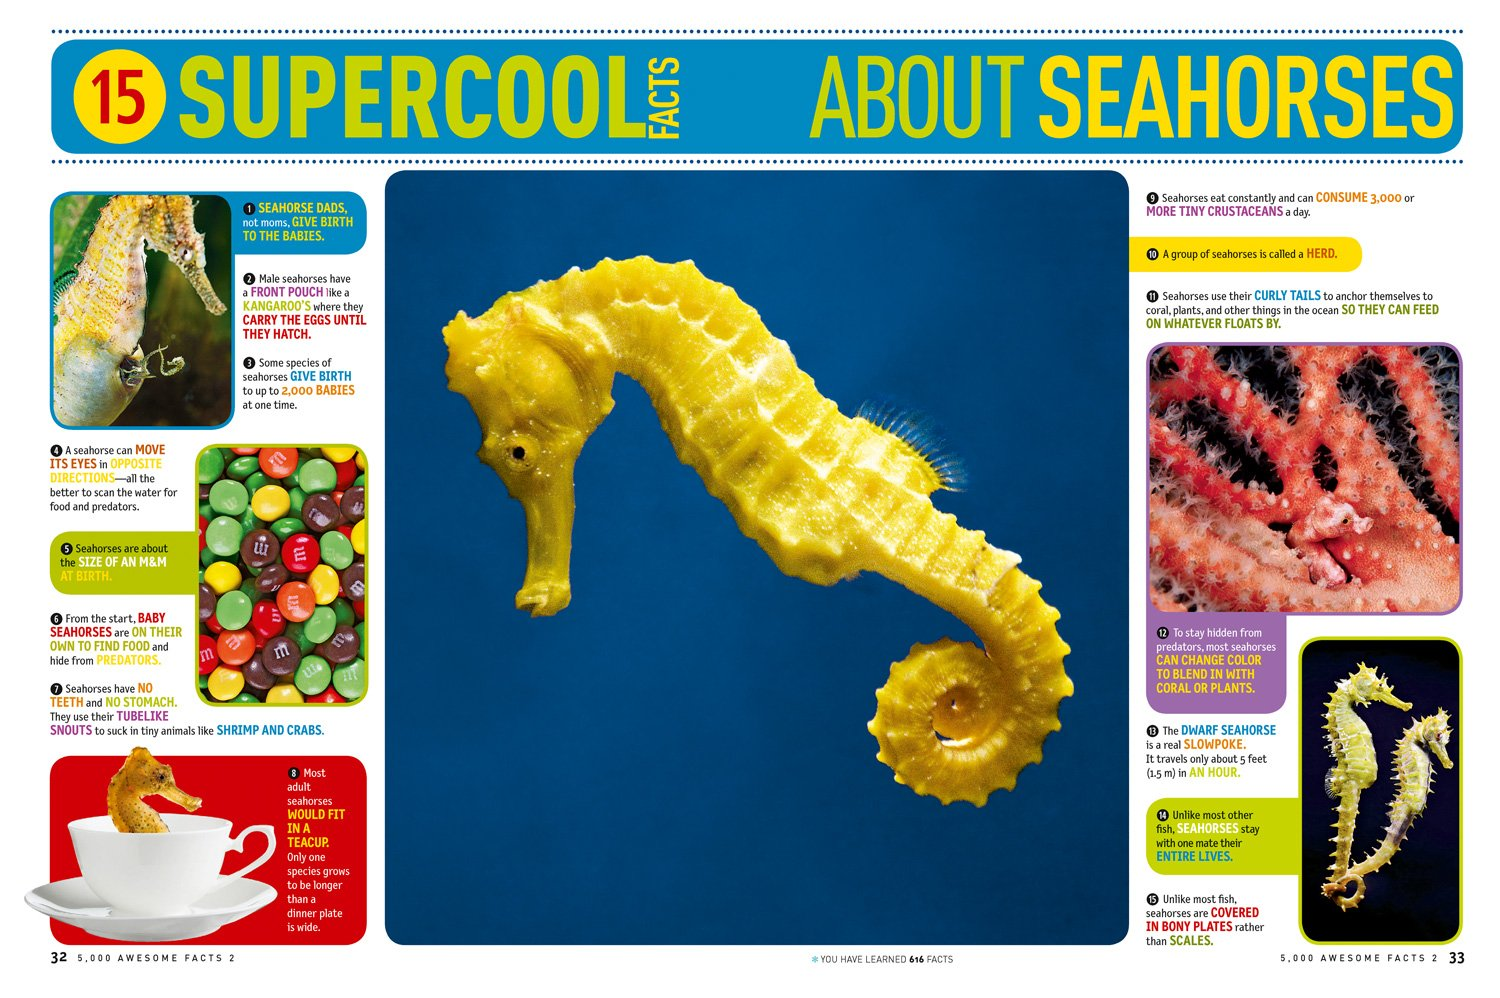 5,000 Awesome Facts (About Everything!) 2 (National Geographic Kids) by National Geographic Books (Image #5)